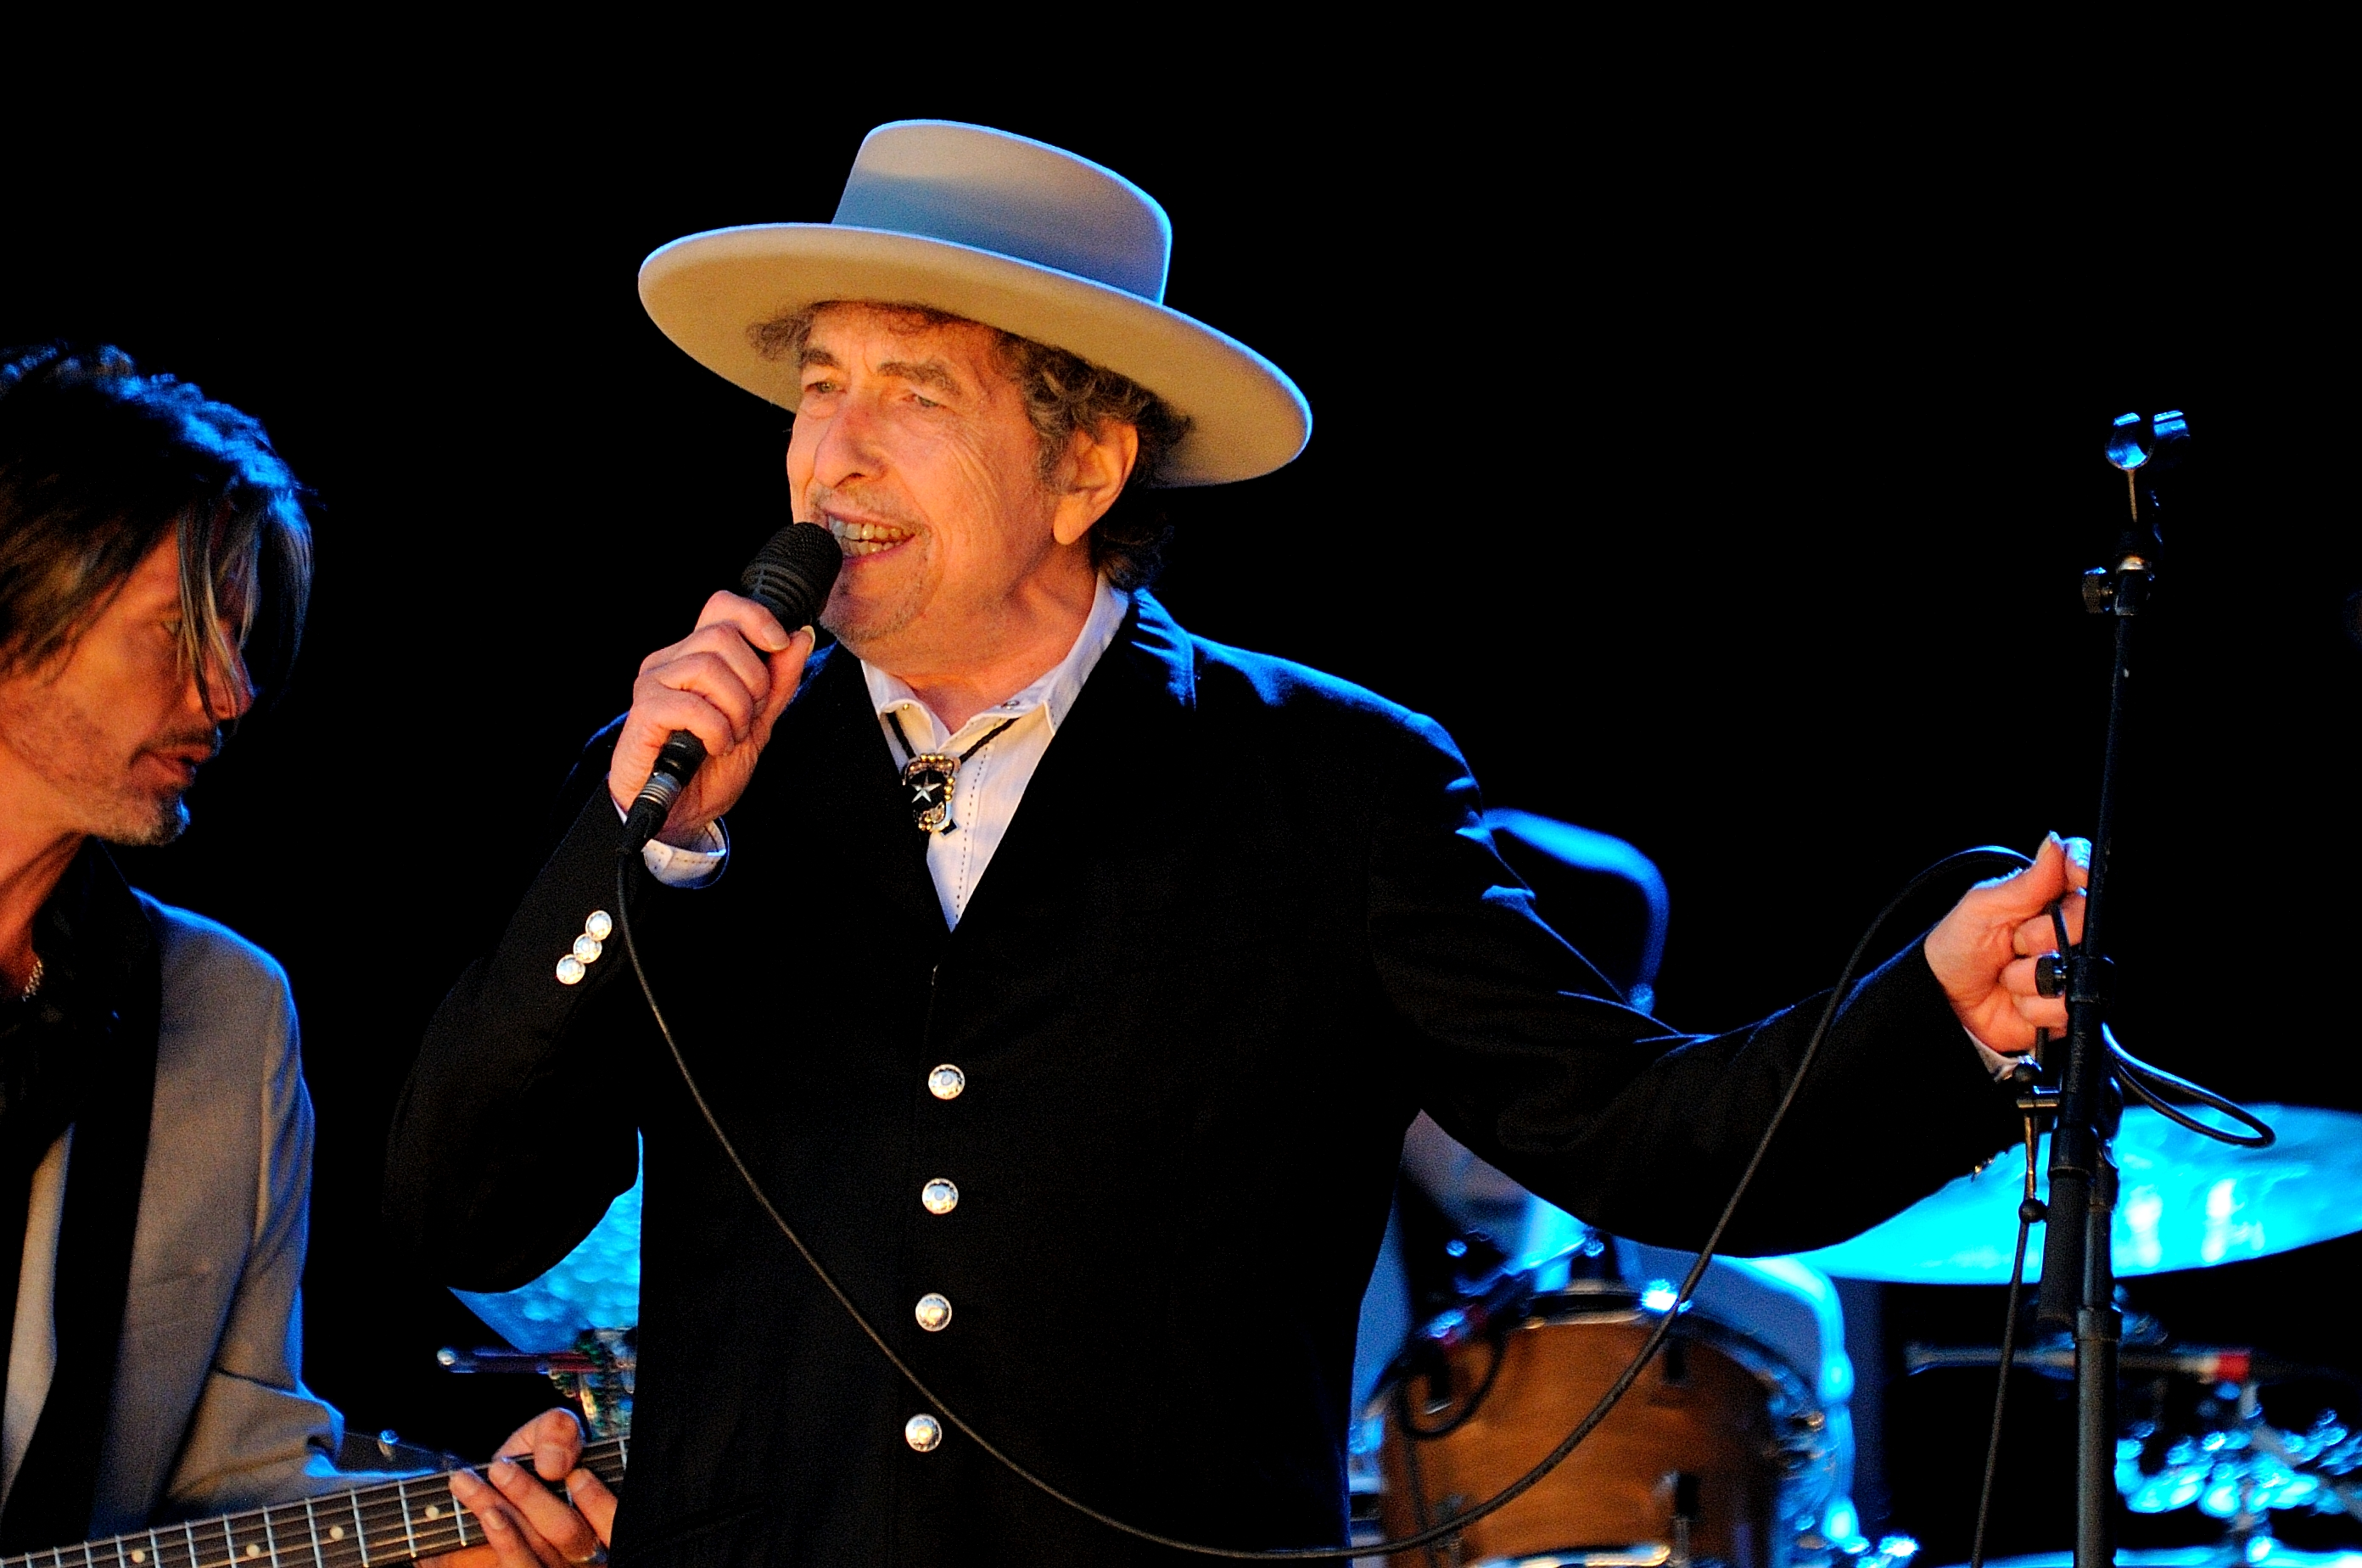 Bob Dylan performs on stage during Hop Farm Festival on June 30, 2012 in Paddock Wood, United Kingdom.